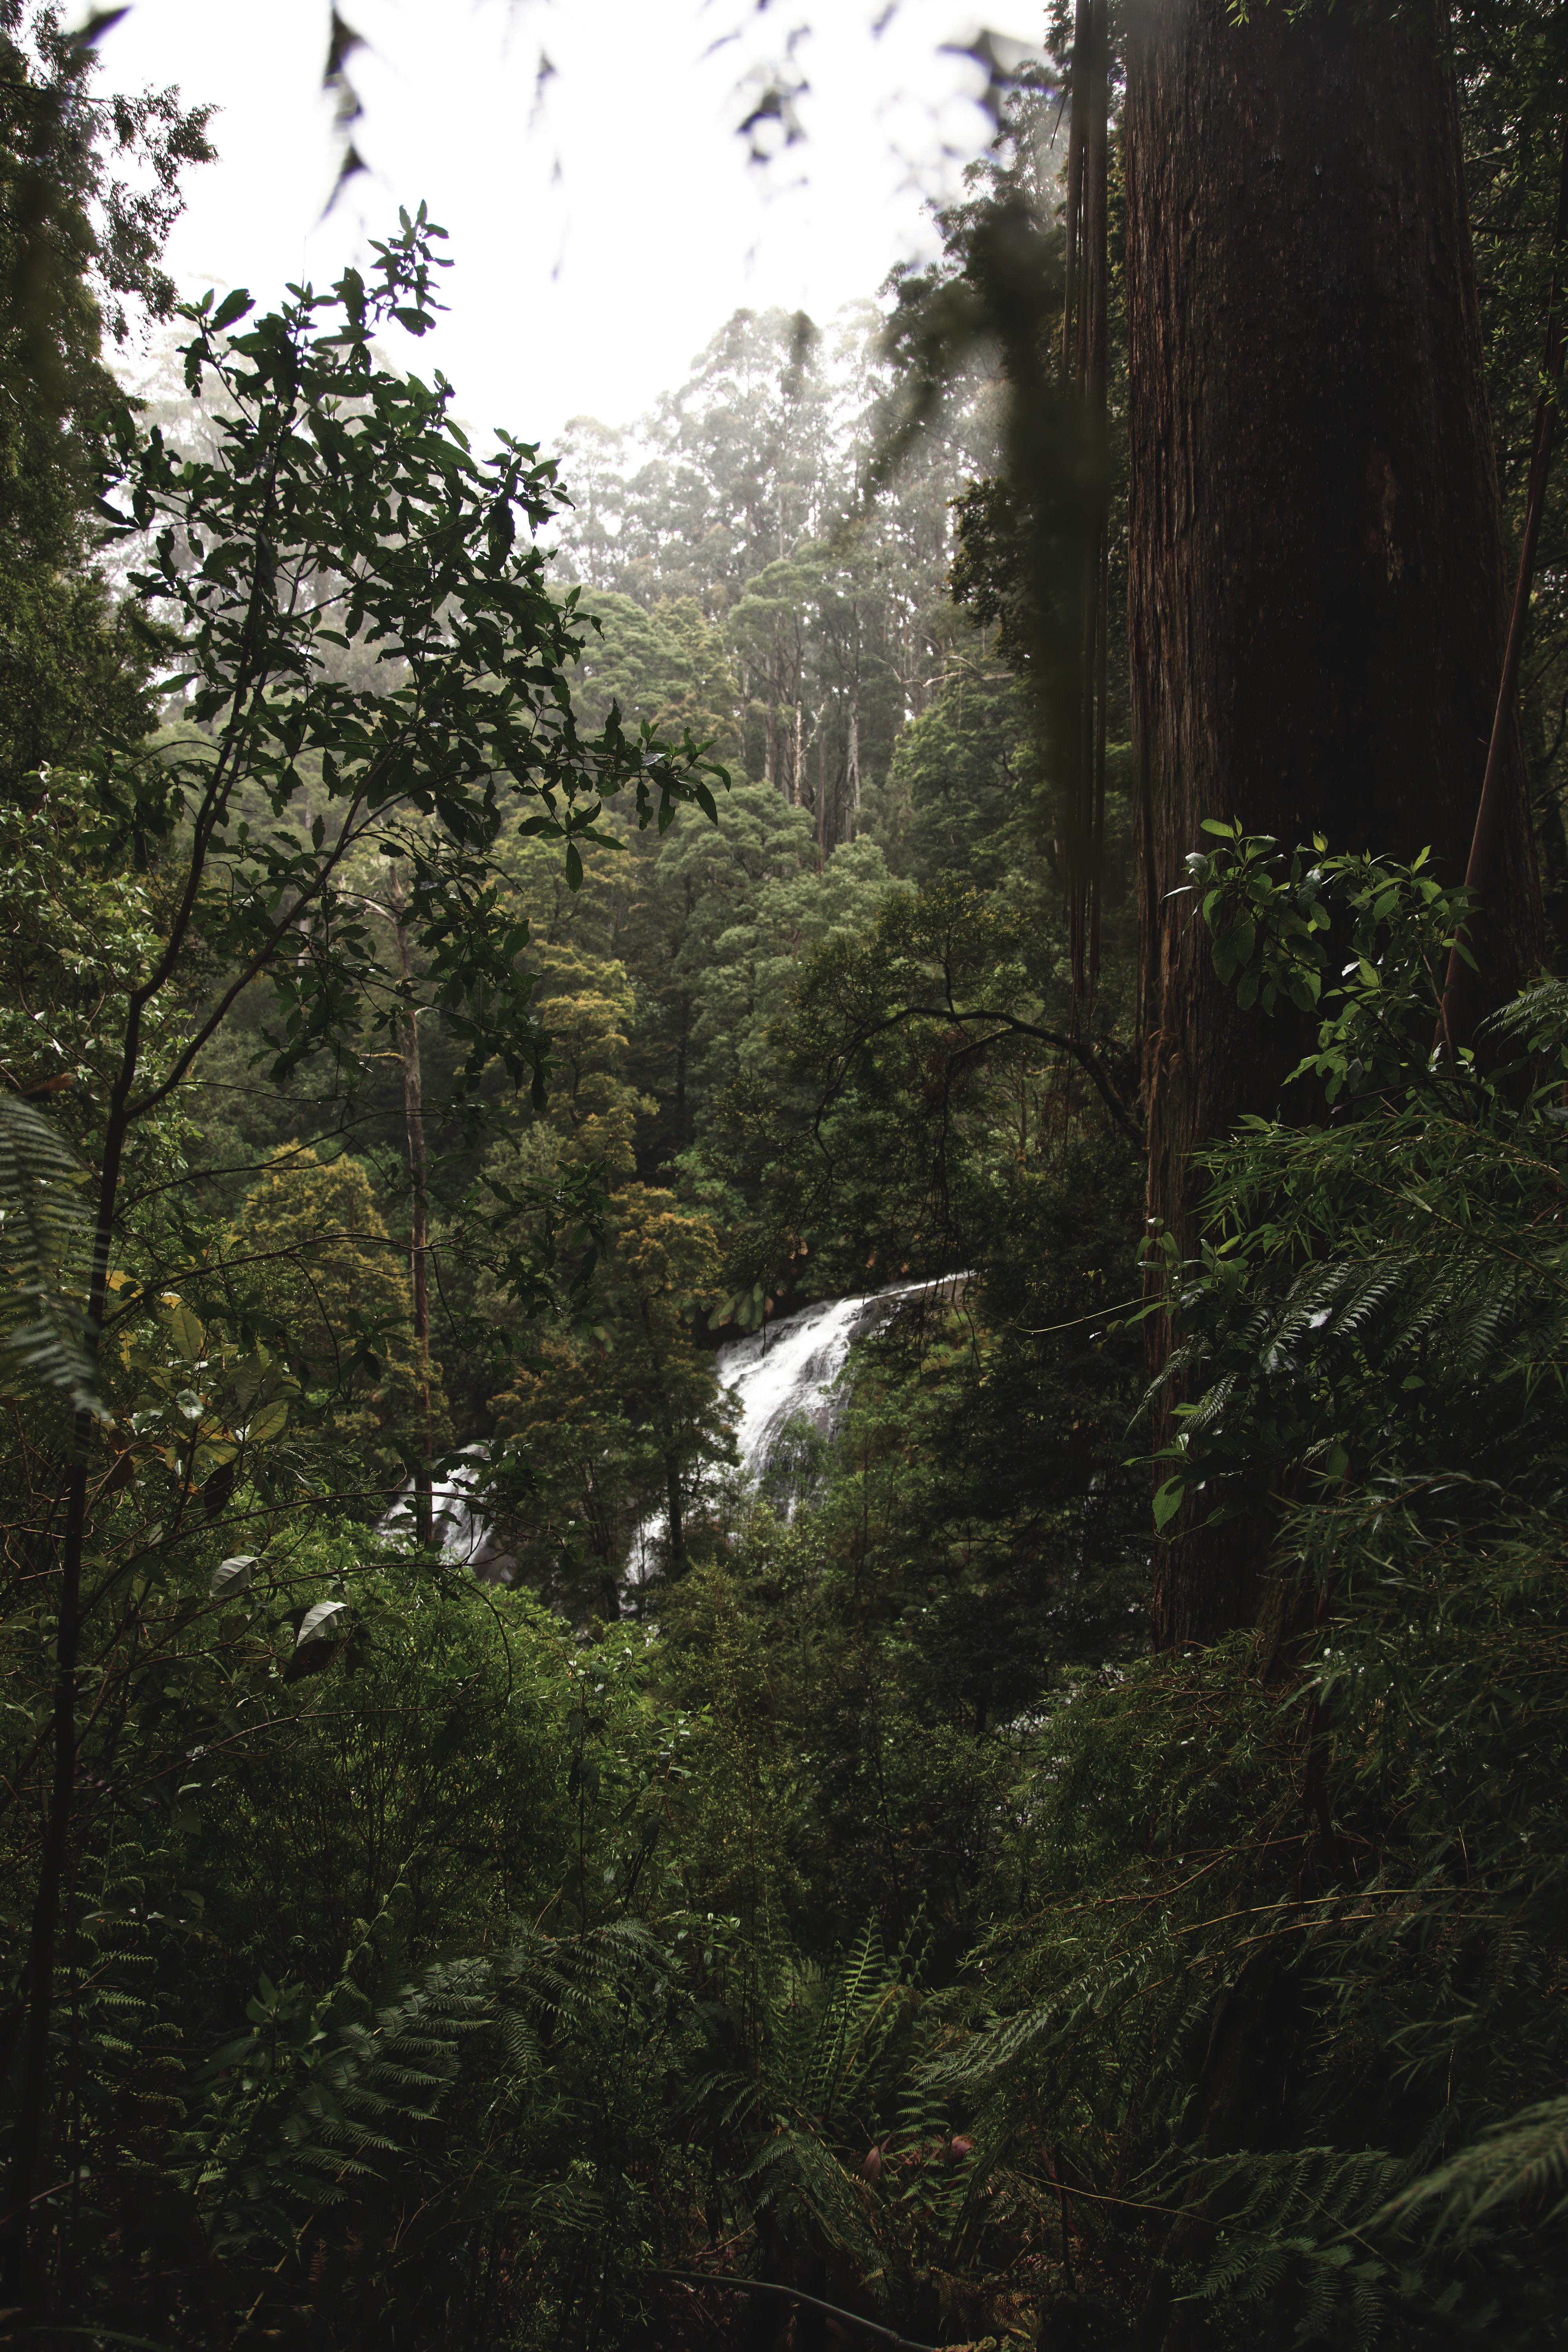 157189 download wallpaper Nature, Forest, Jungle, Waterfall, Trees, Bush screensavers and pictures for free